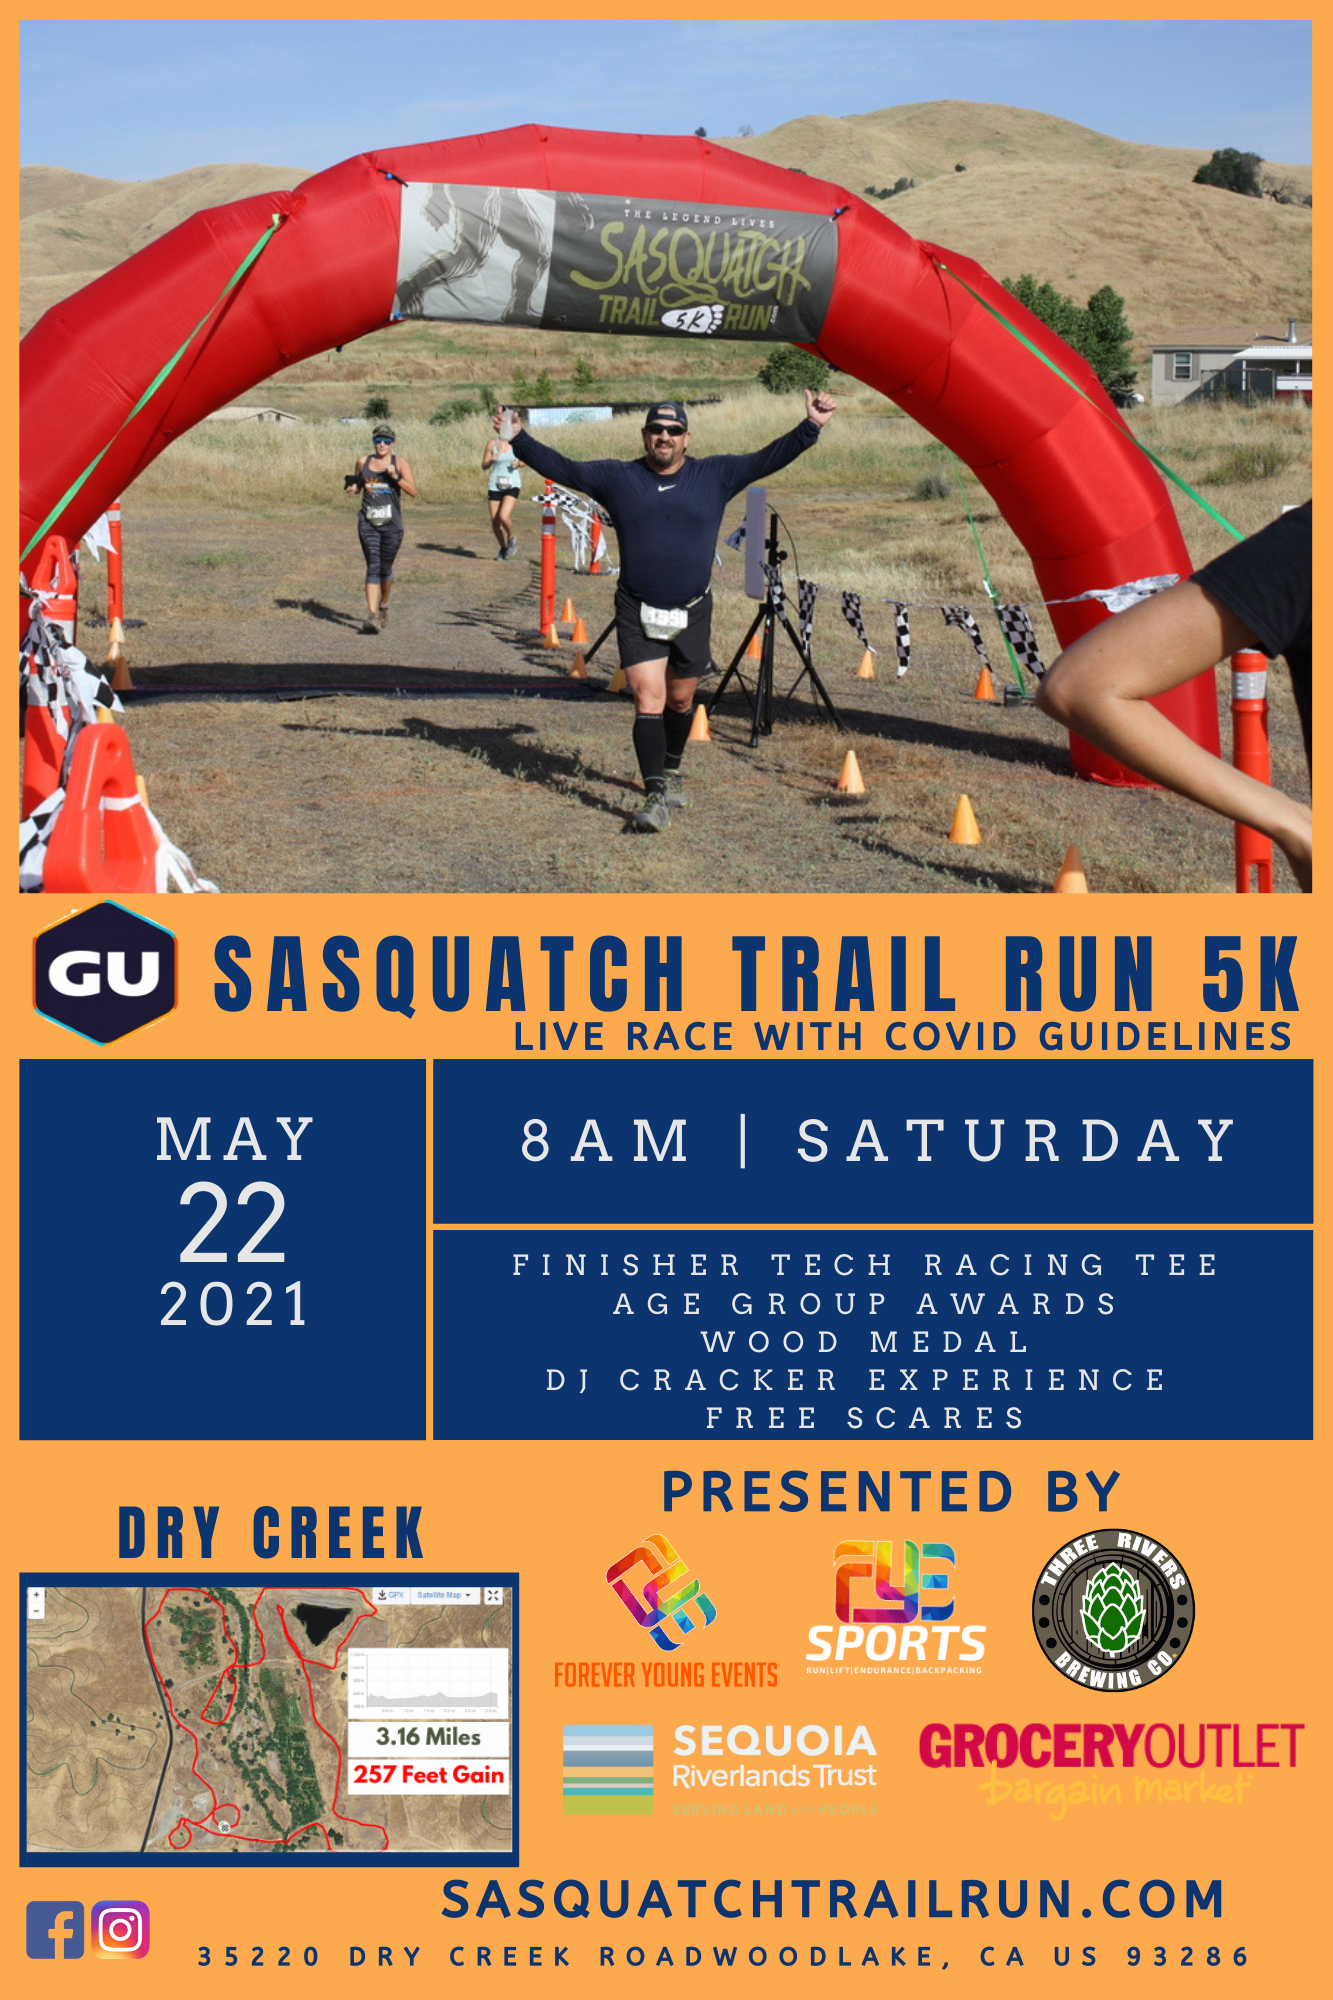 Sasquatch Trail Run - 5K Race